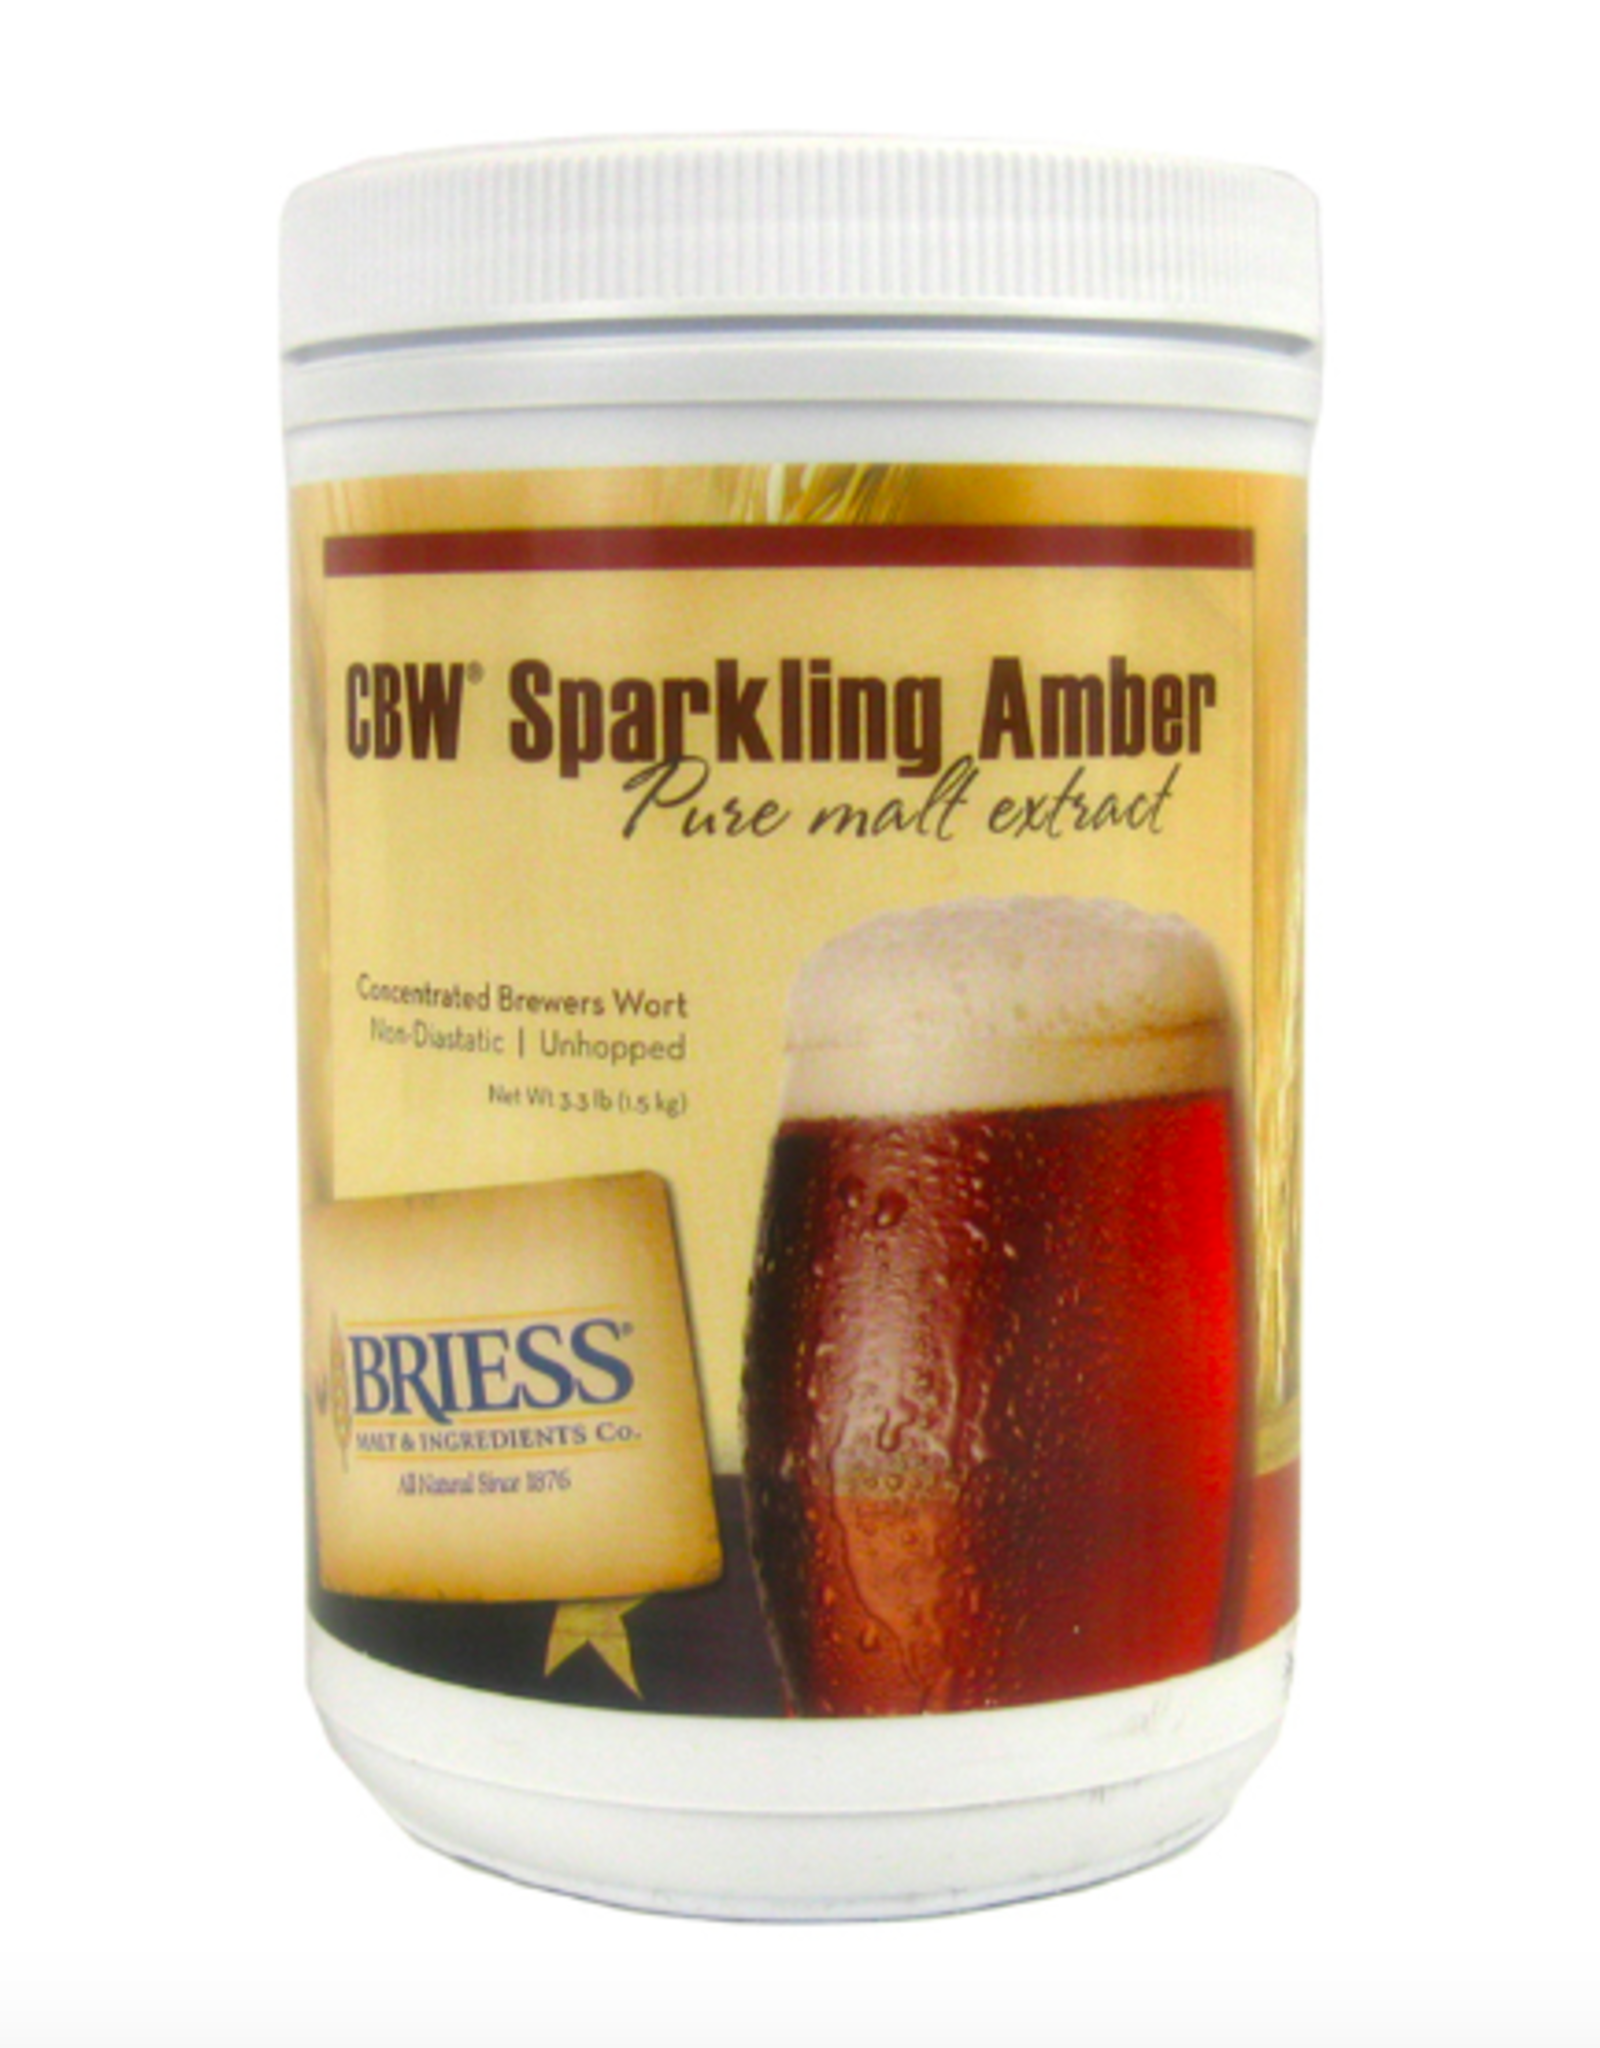 BRIESS SPARKLING AMBER CANISTER 3.3 LB